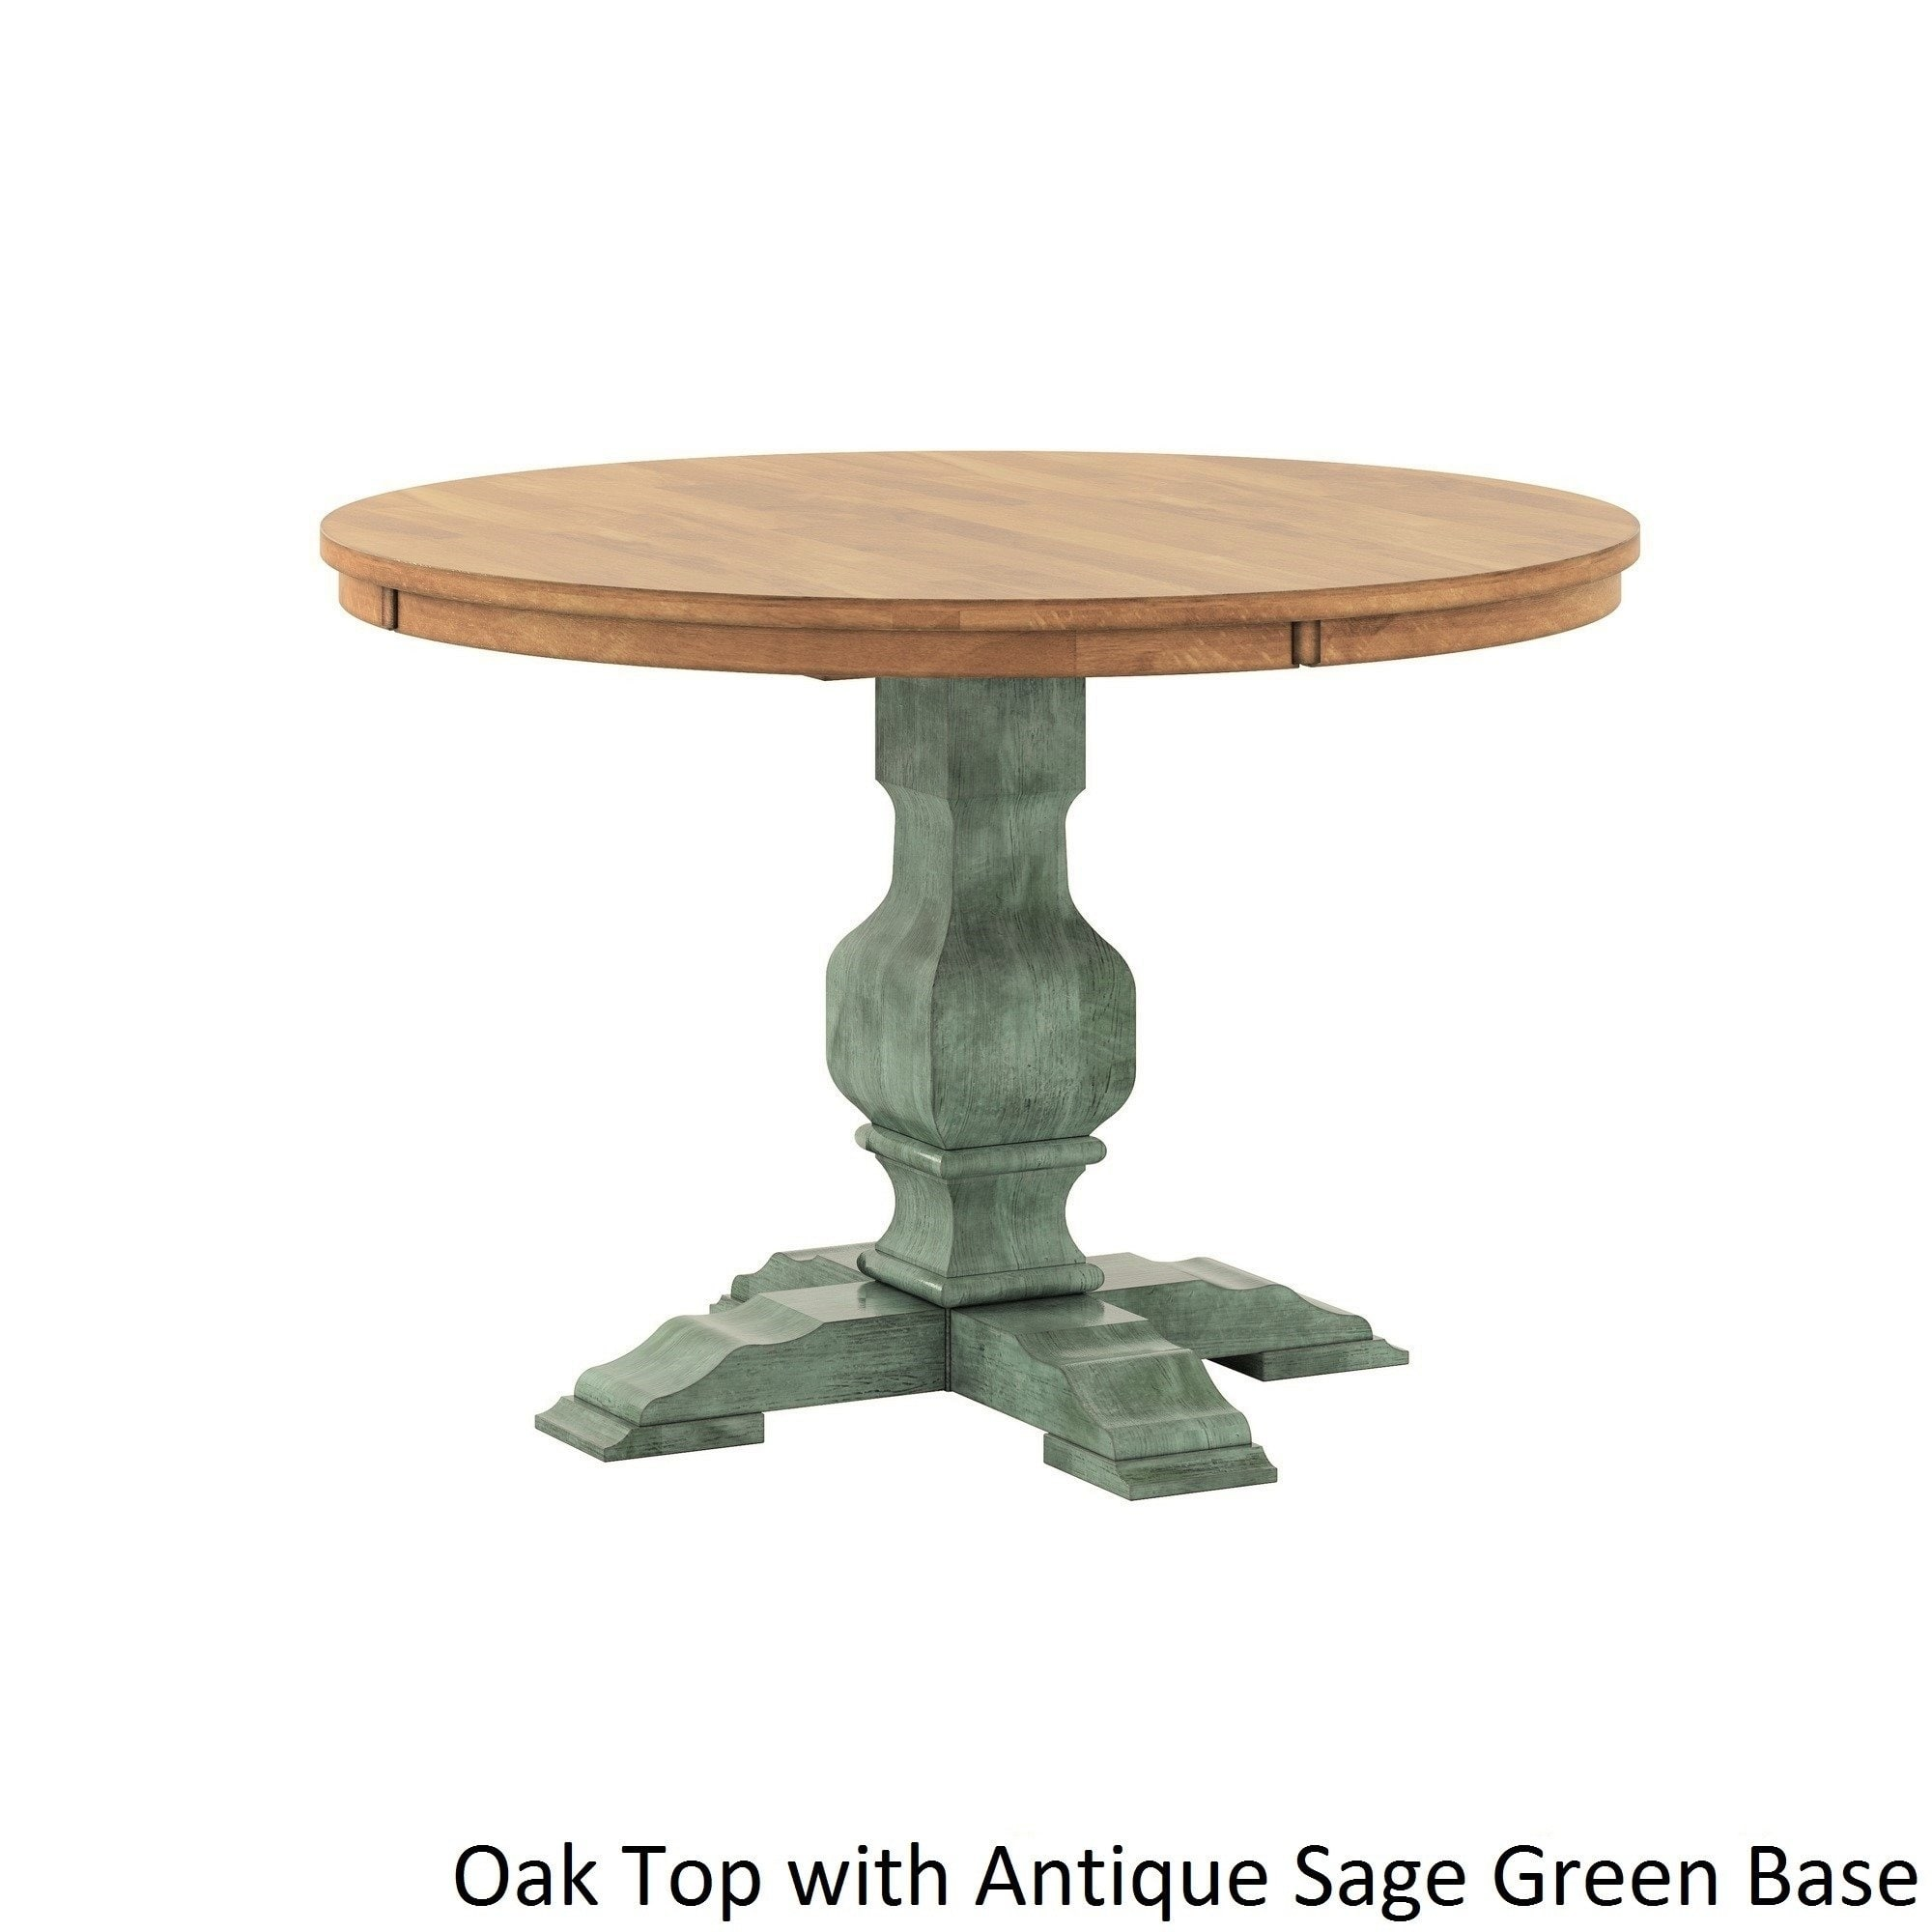 eleanor two tone round solid wood top dining table inspire classic sage green accent tables free shipping today farm style kitchen wicker set bedside lamp base west elm armchair